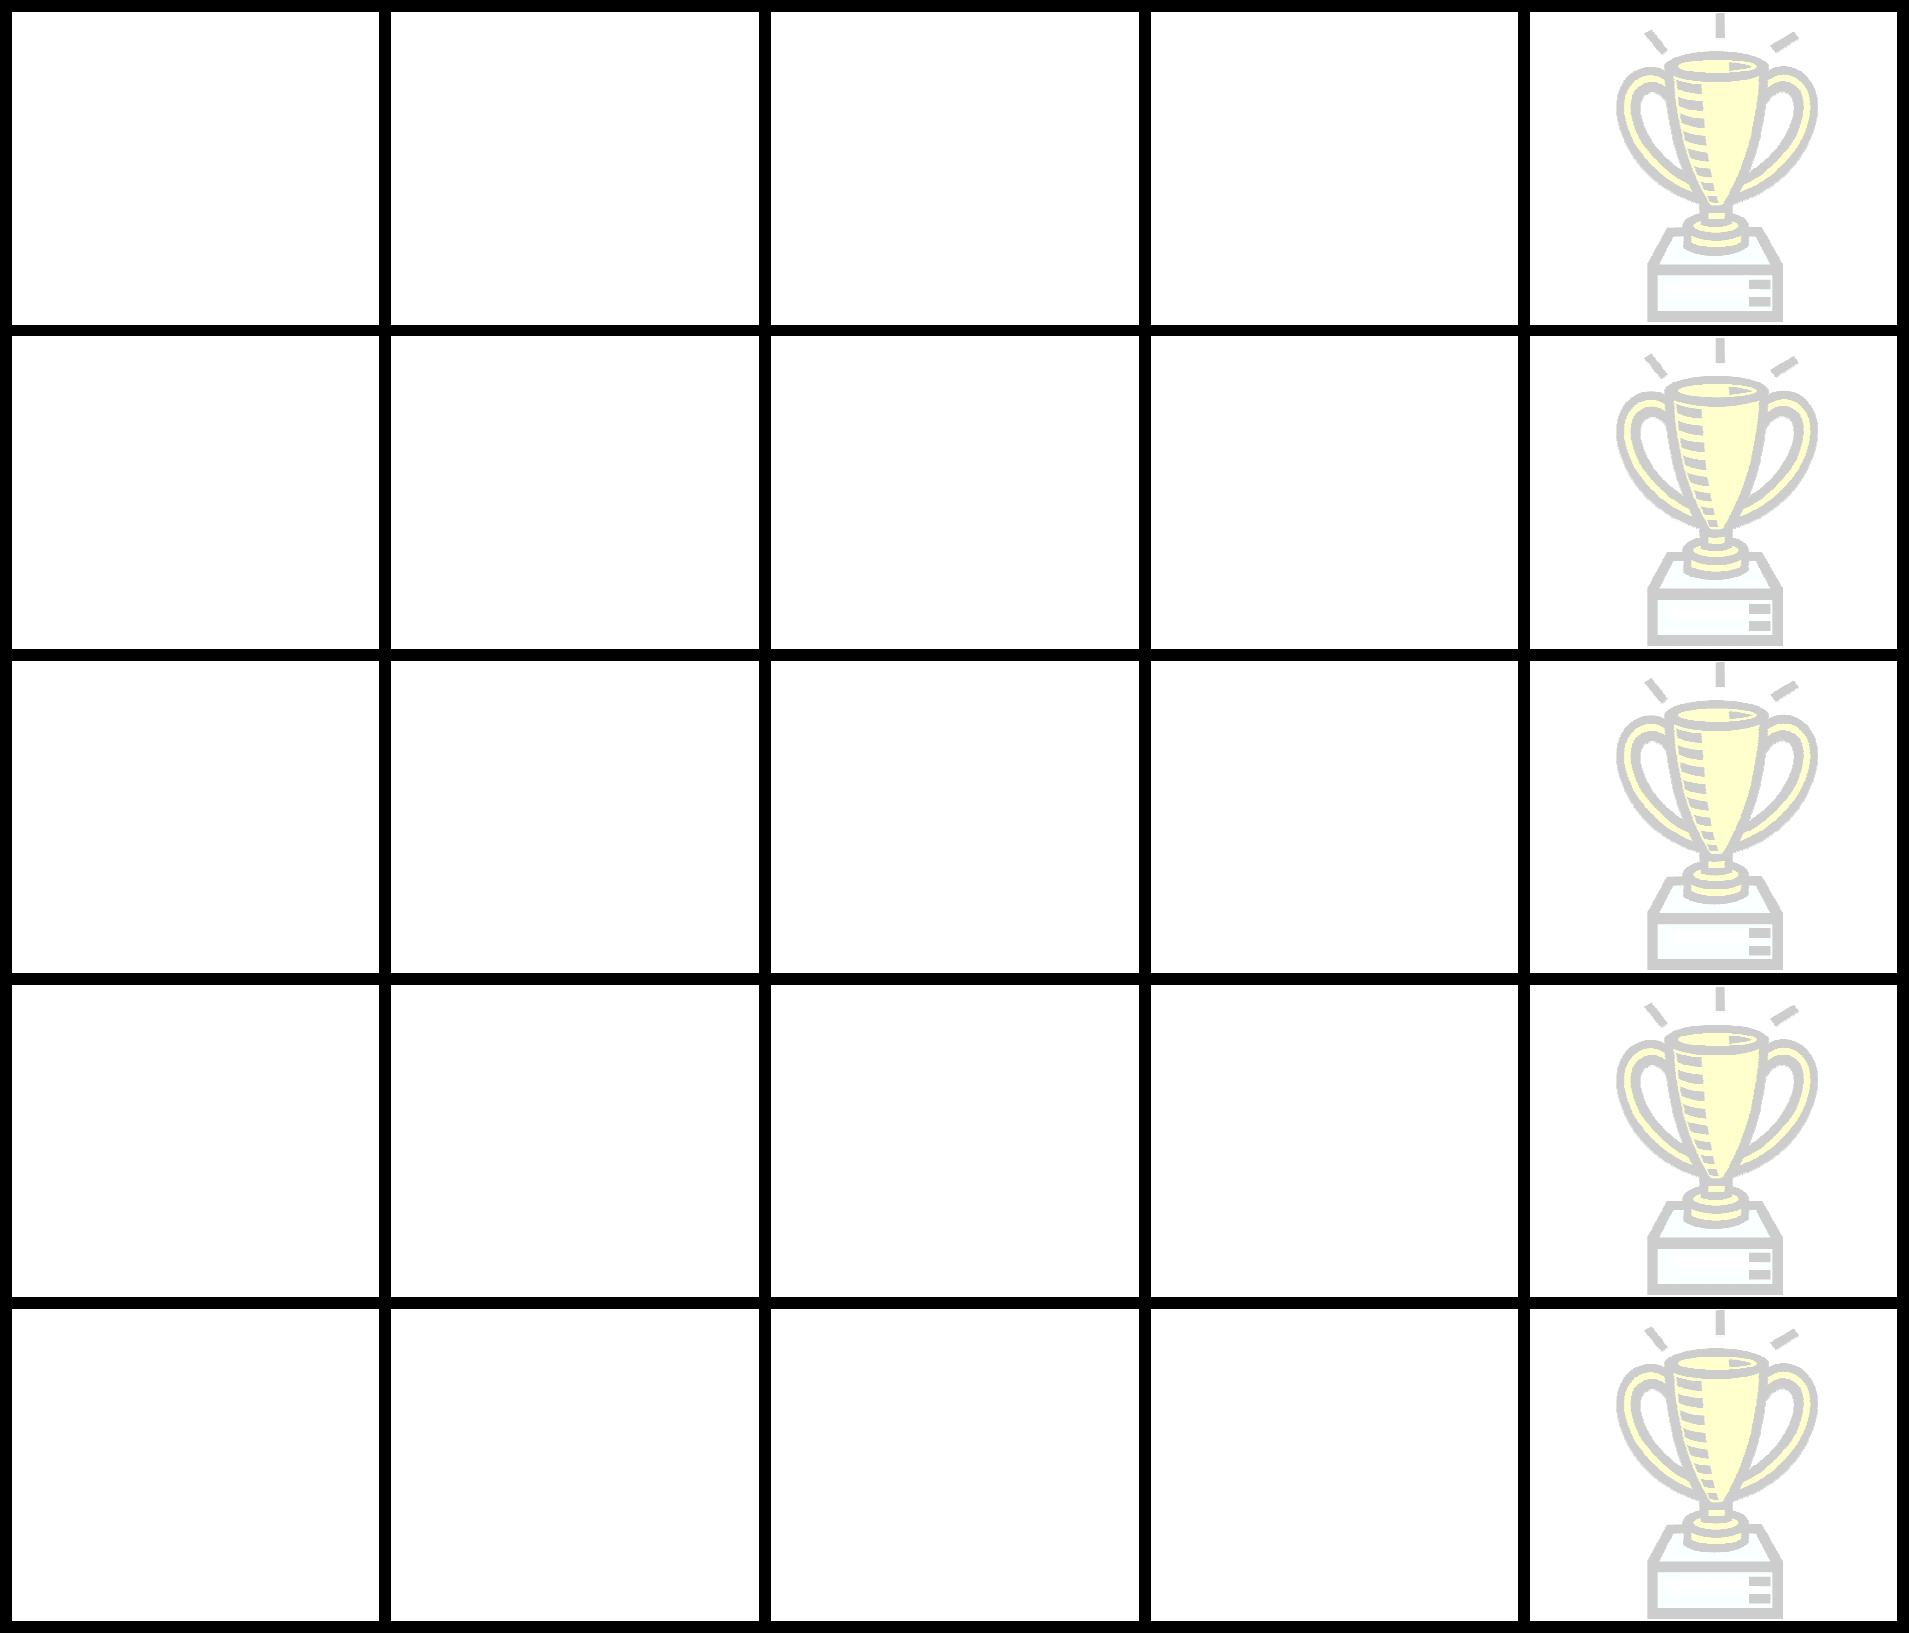 Free Promissory Note Forms Blank Printable Online Blank Sticker Chart Template Free Download